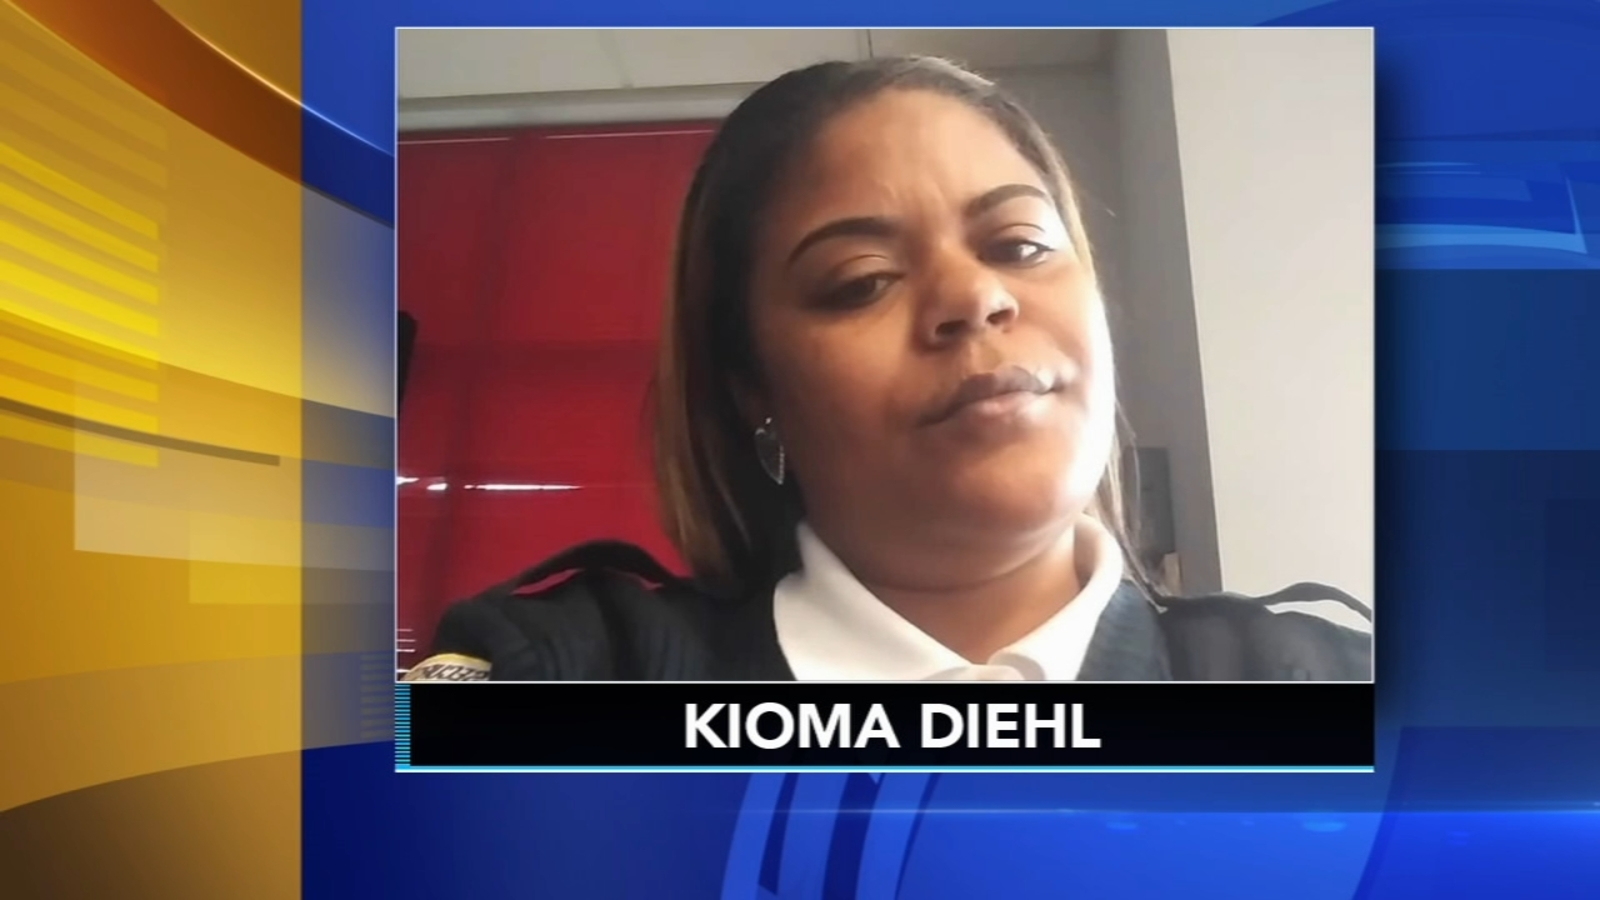 Homicide police investigate death of 13-year-old girl in